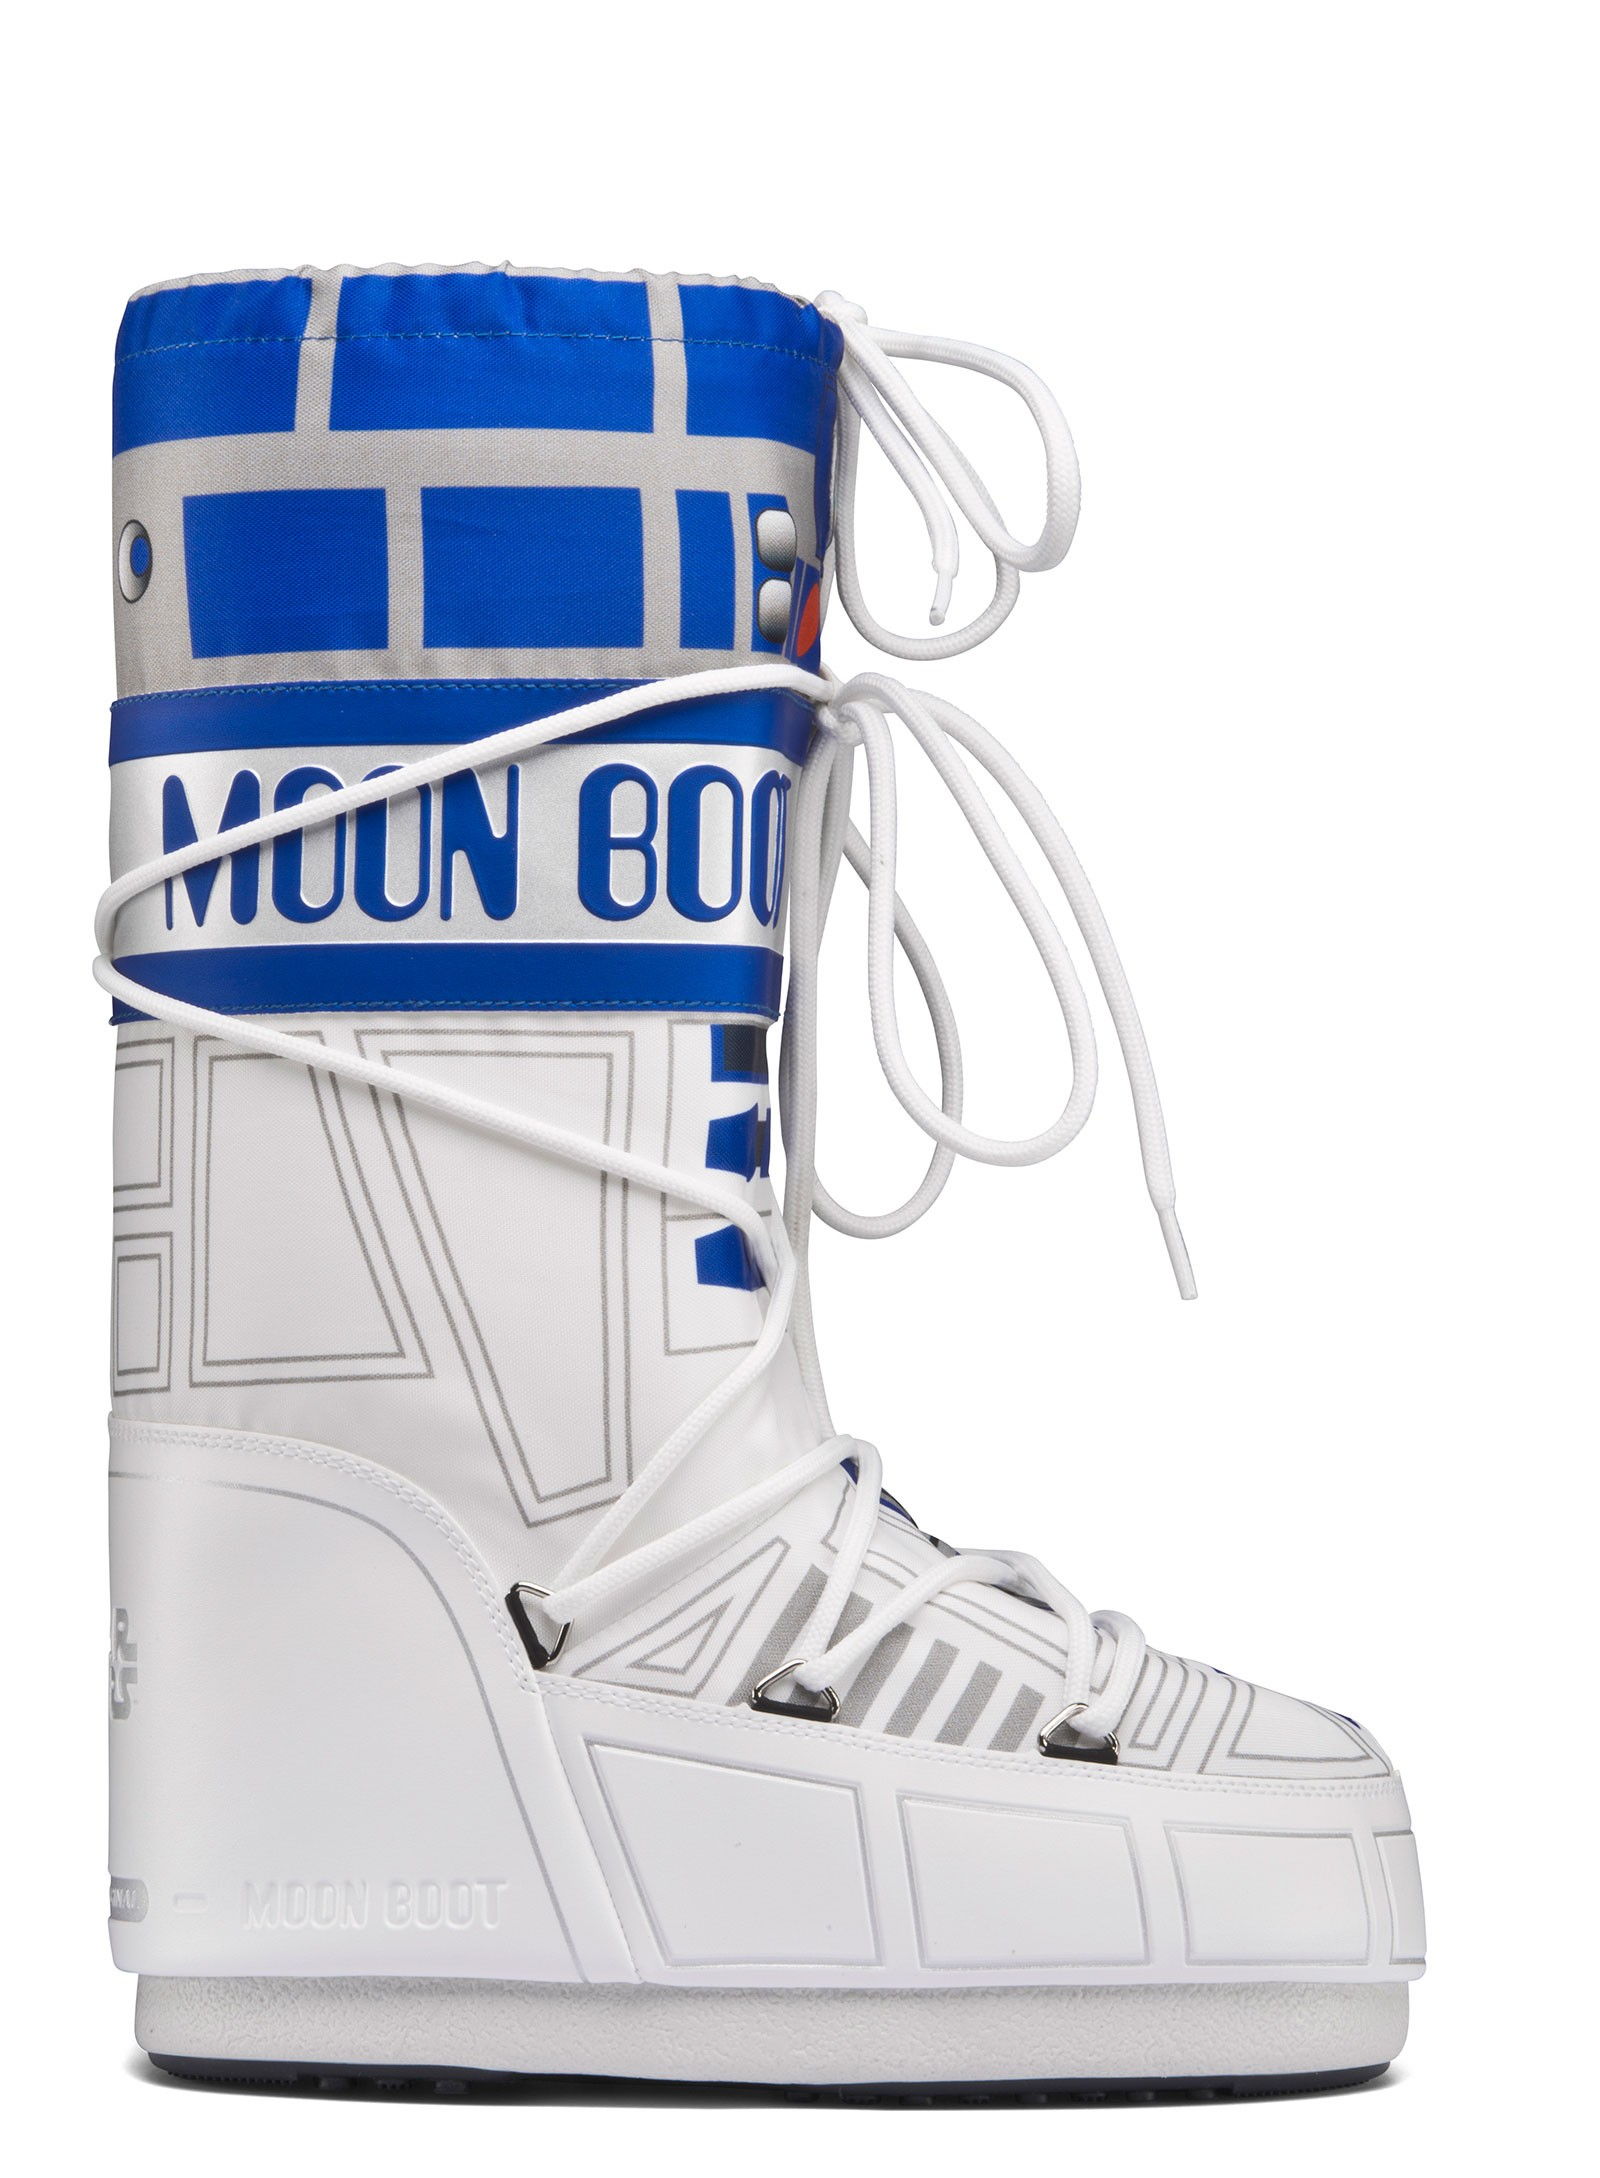 _1600x0r_MOON-BOOT-SW-R2-D2_white-blue-silver_14021100001